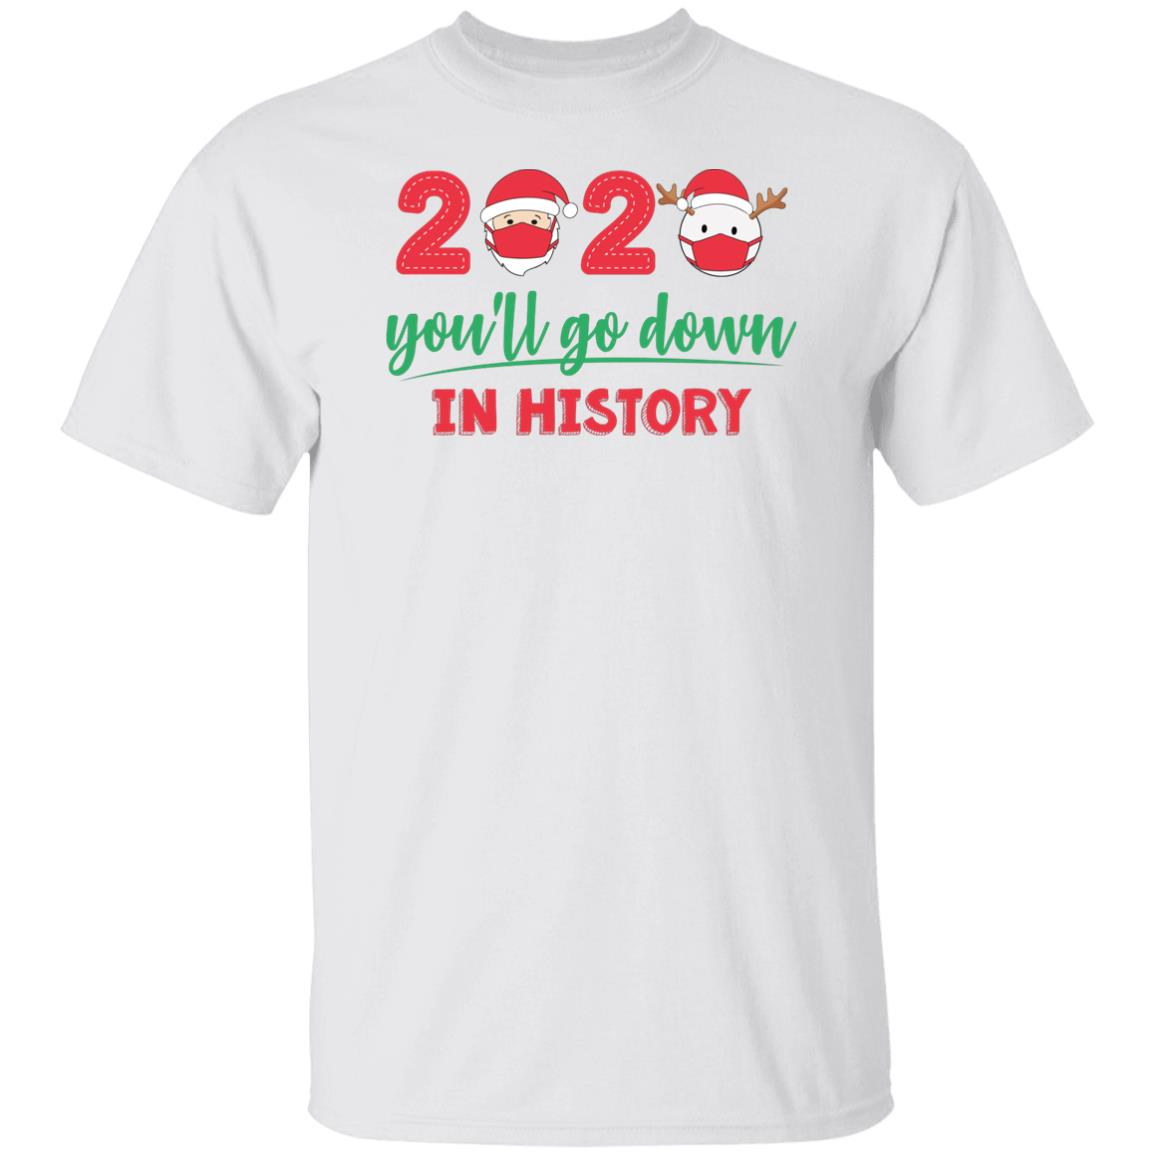 Christmas 2020 Family Shirts - CSCC103